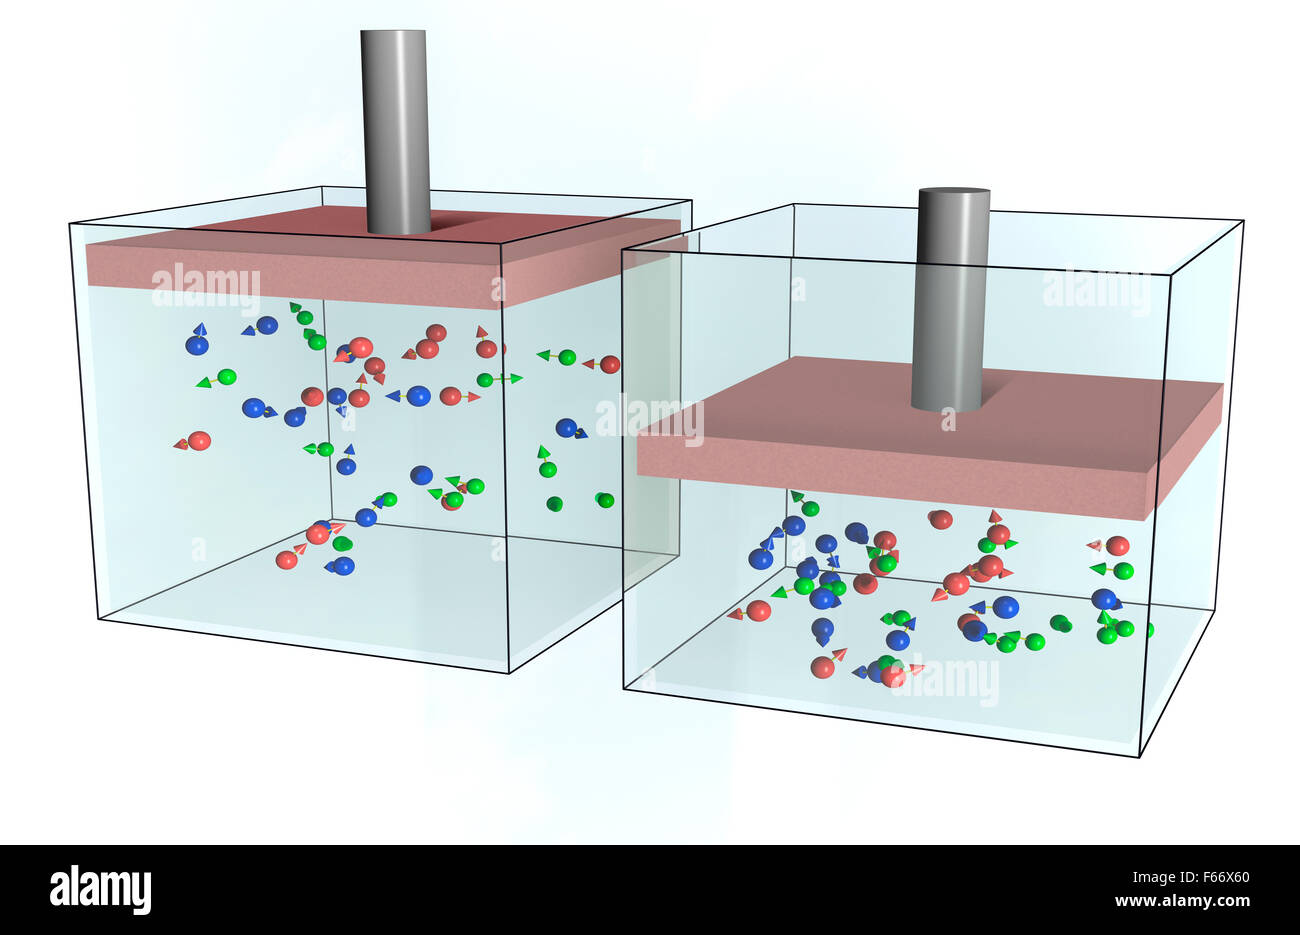 kinetic theory of gases - Stock Image